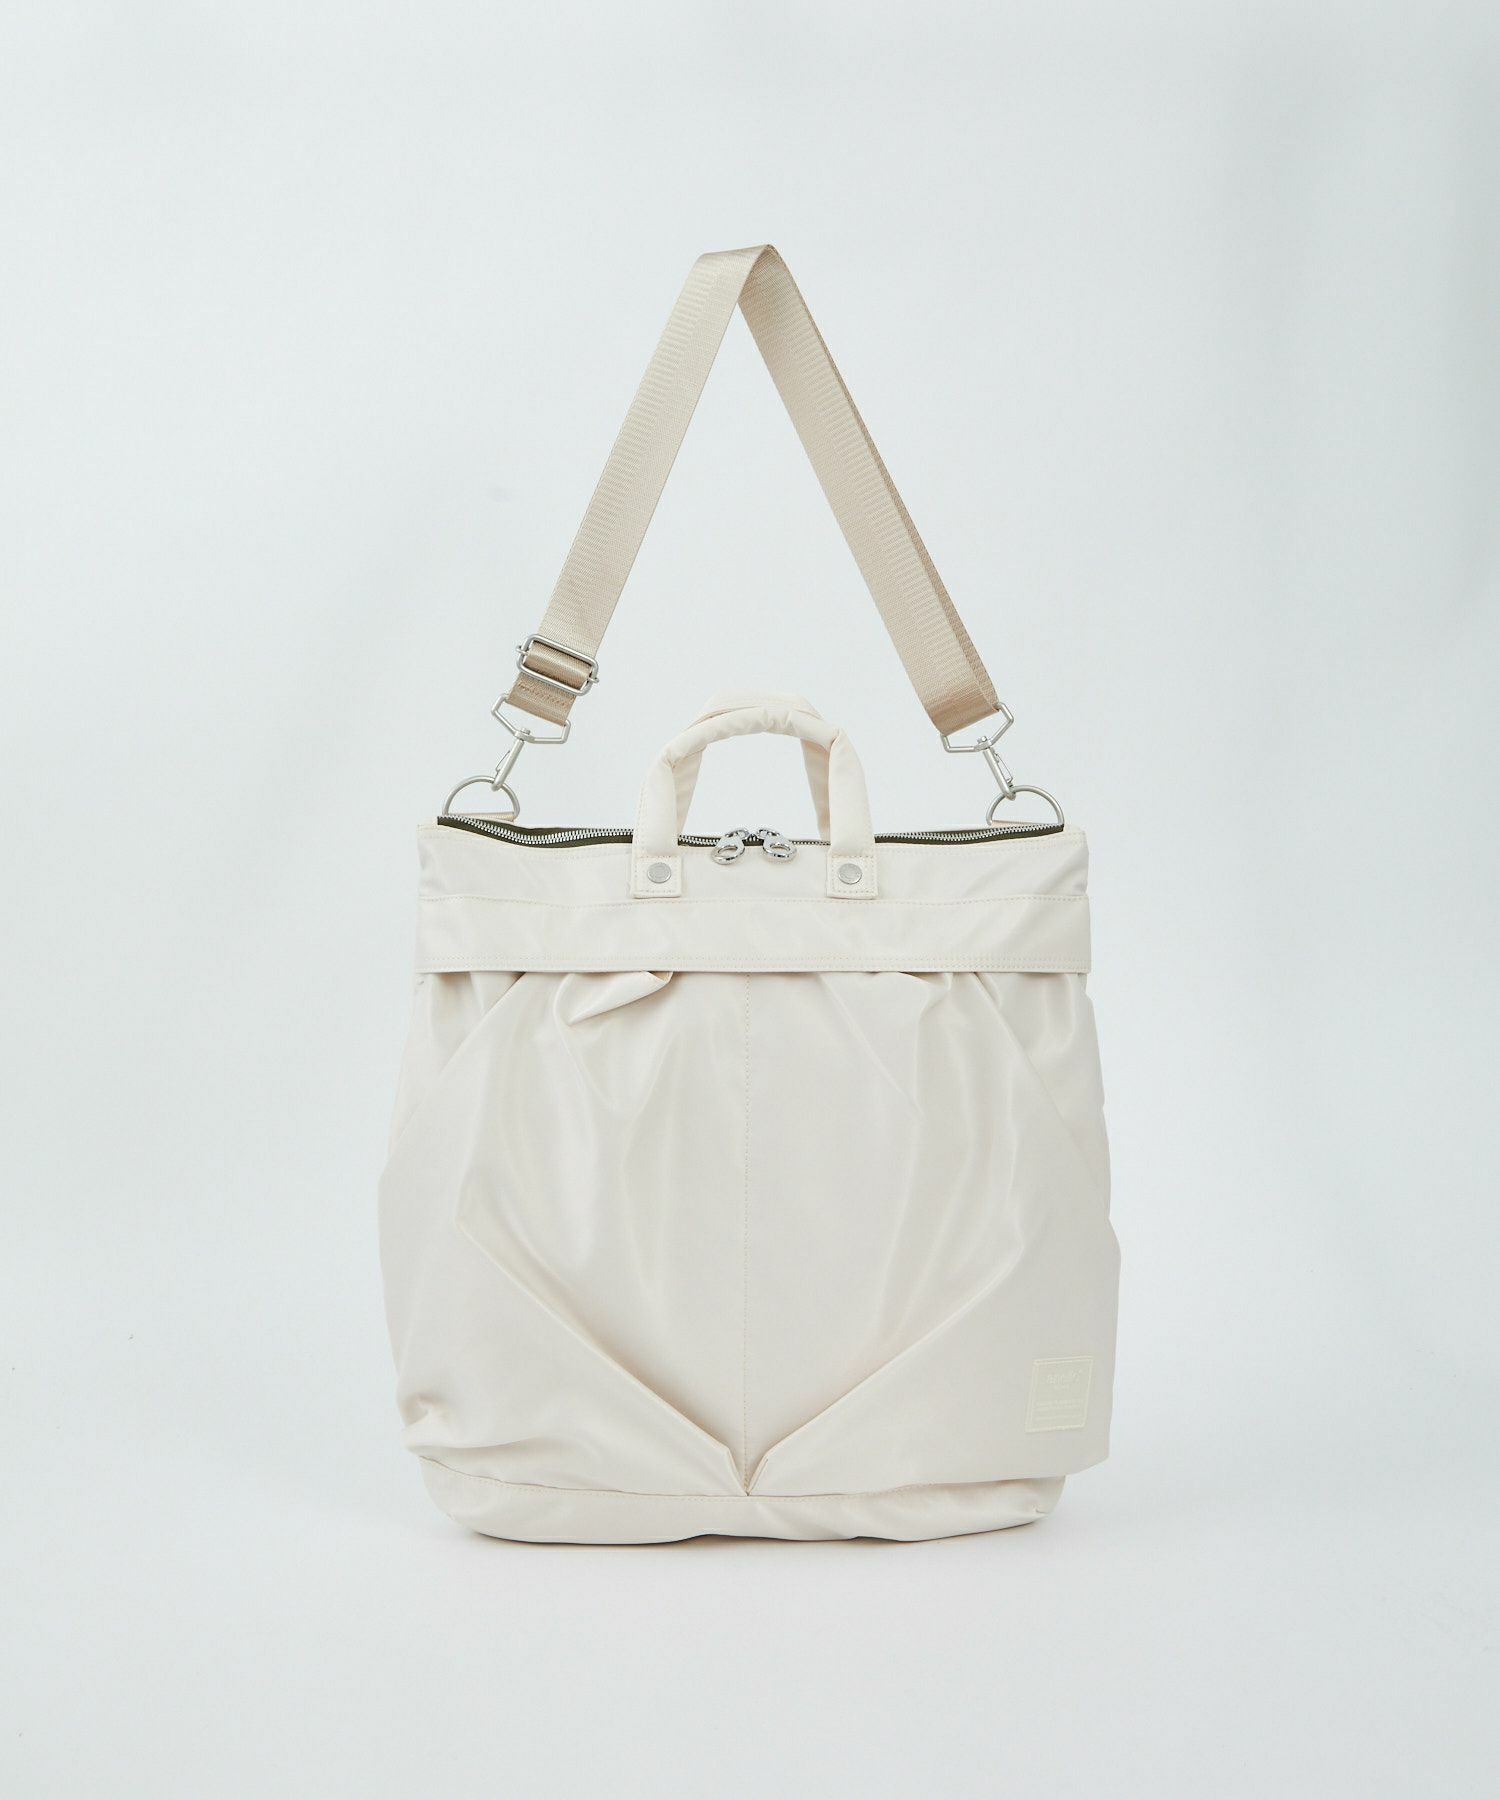 Anello SABRINA Nylon 2 Way Regular Shoulder Bag ATT0504 Ivory Japan Original Official Authentic Real Genuine Bag Free Shipping Worldwide Special Discount Low Prices Great Offer